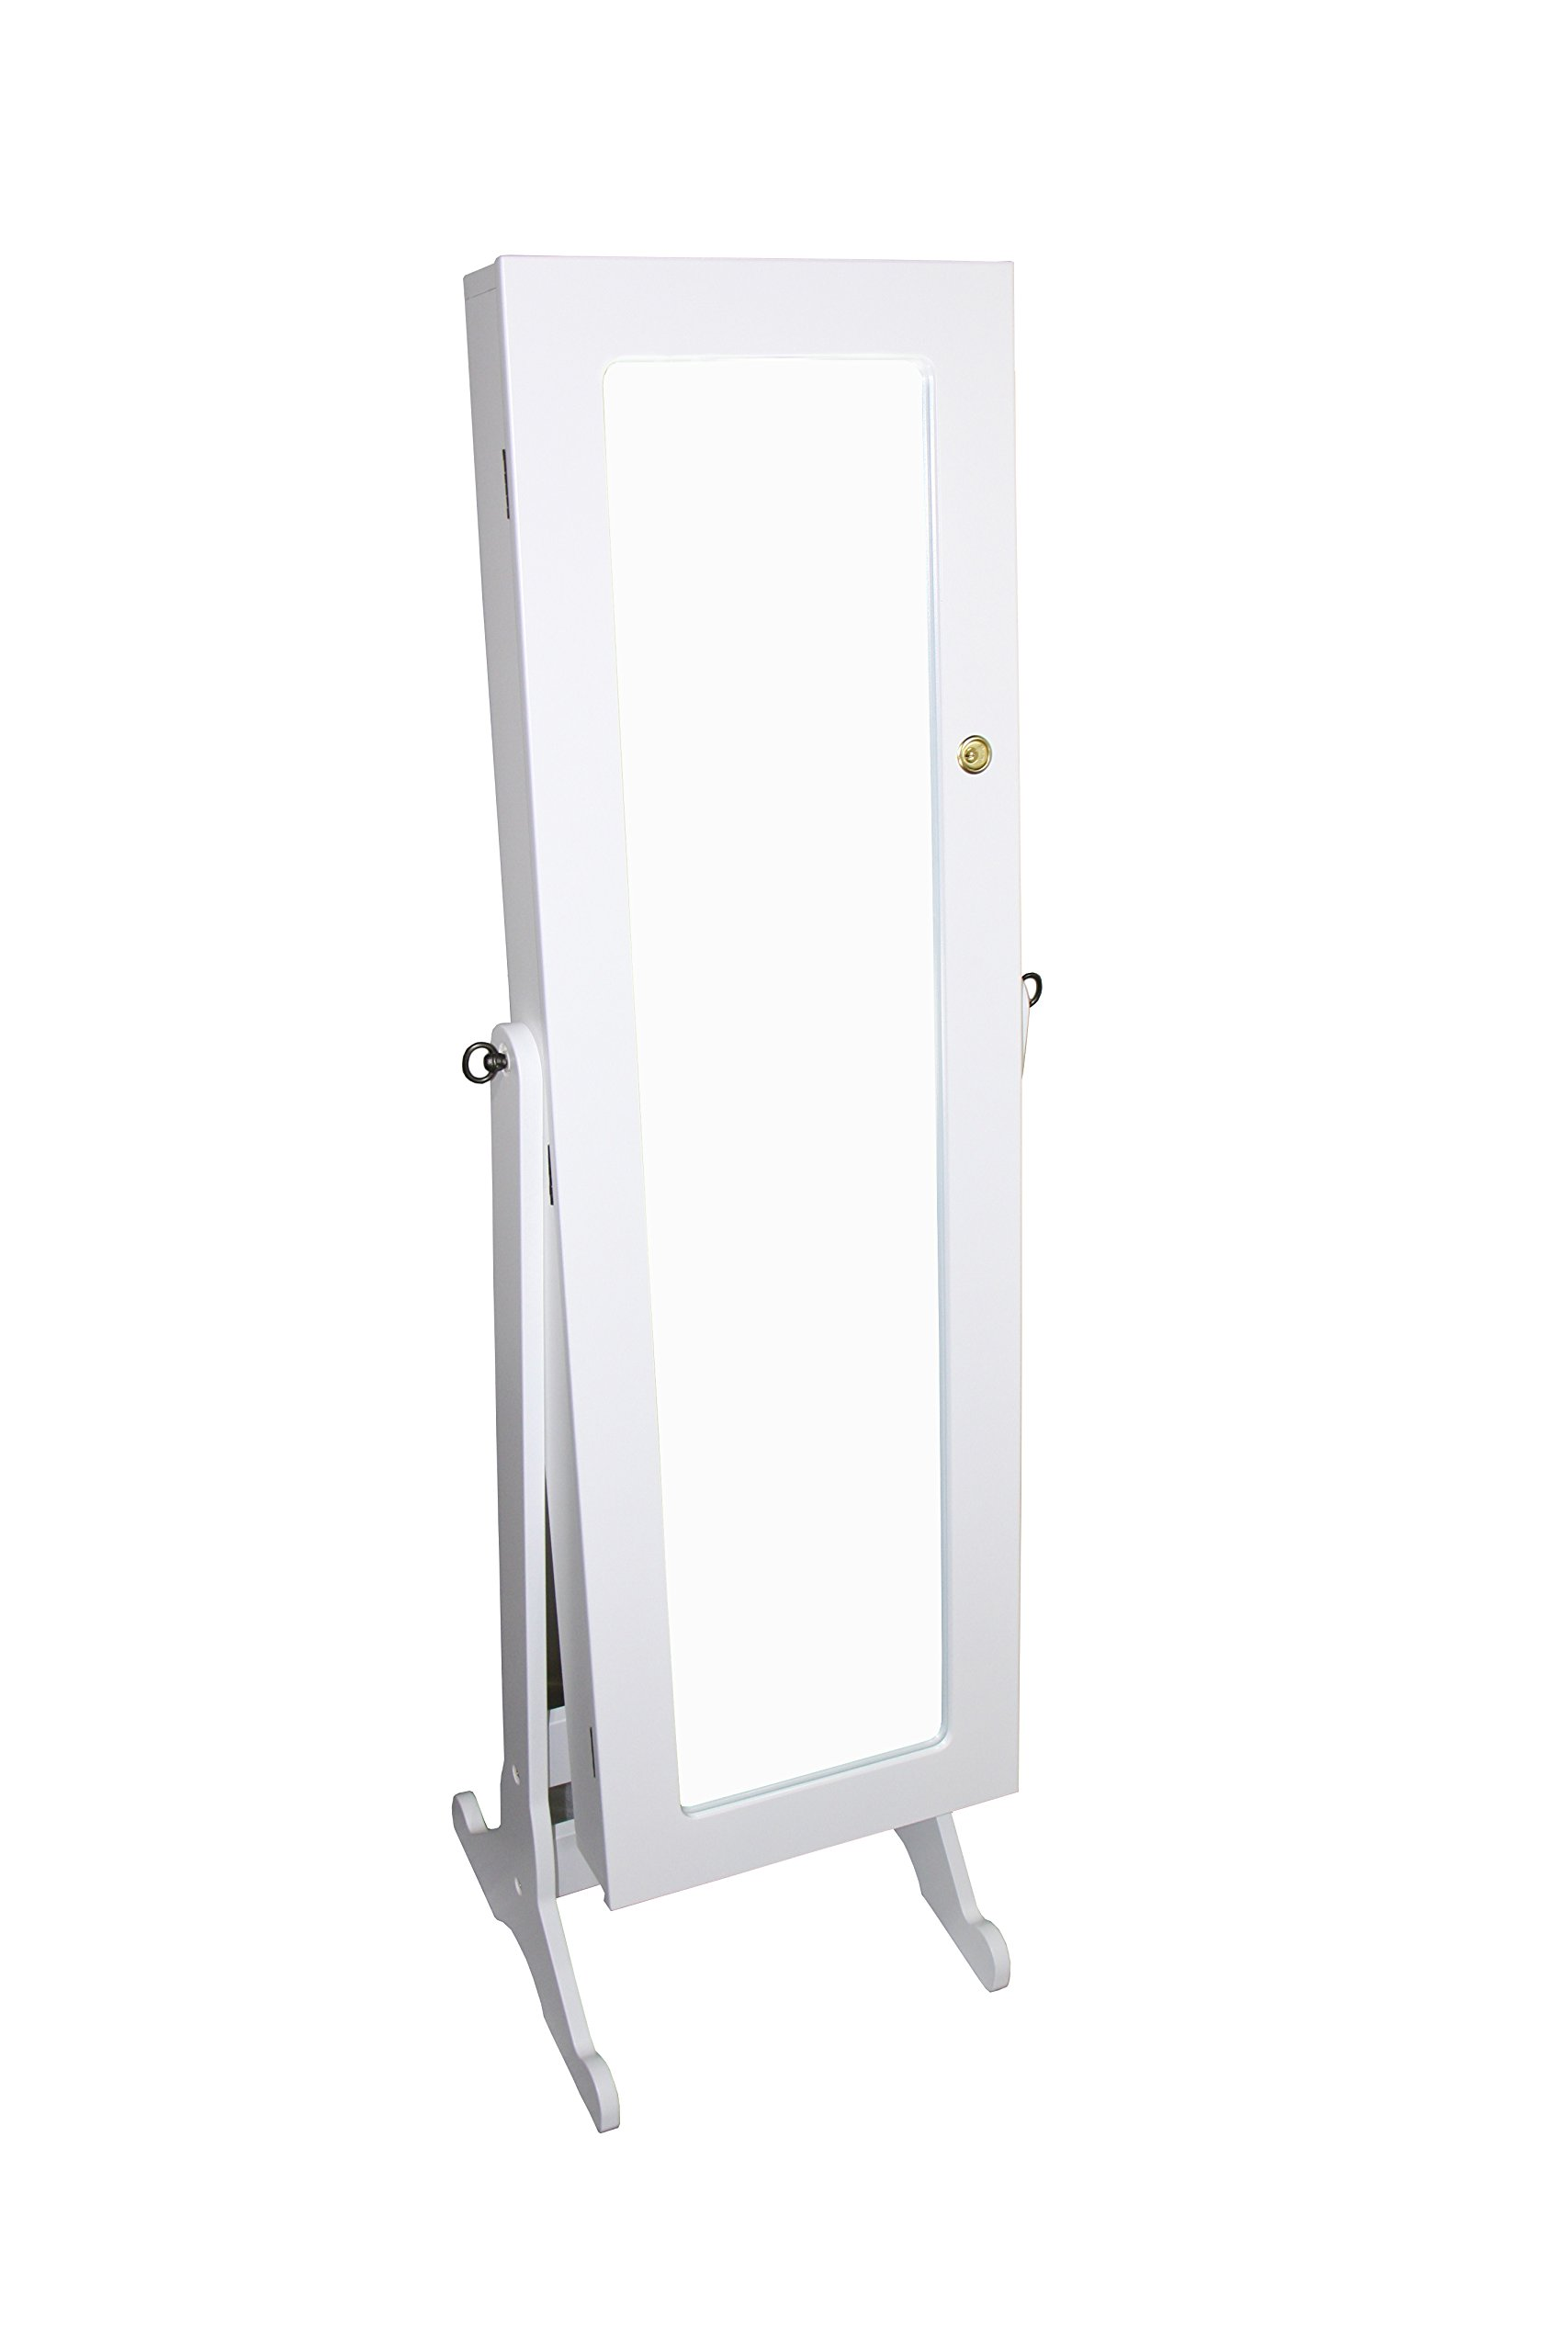 Ore International TH-6003WH Standing Mirror with Storage and Jewelry Armoire Stand, 57-Inch, White